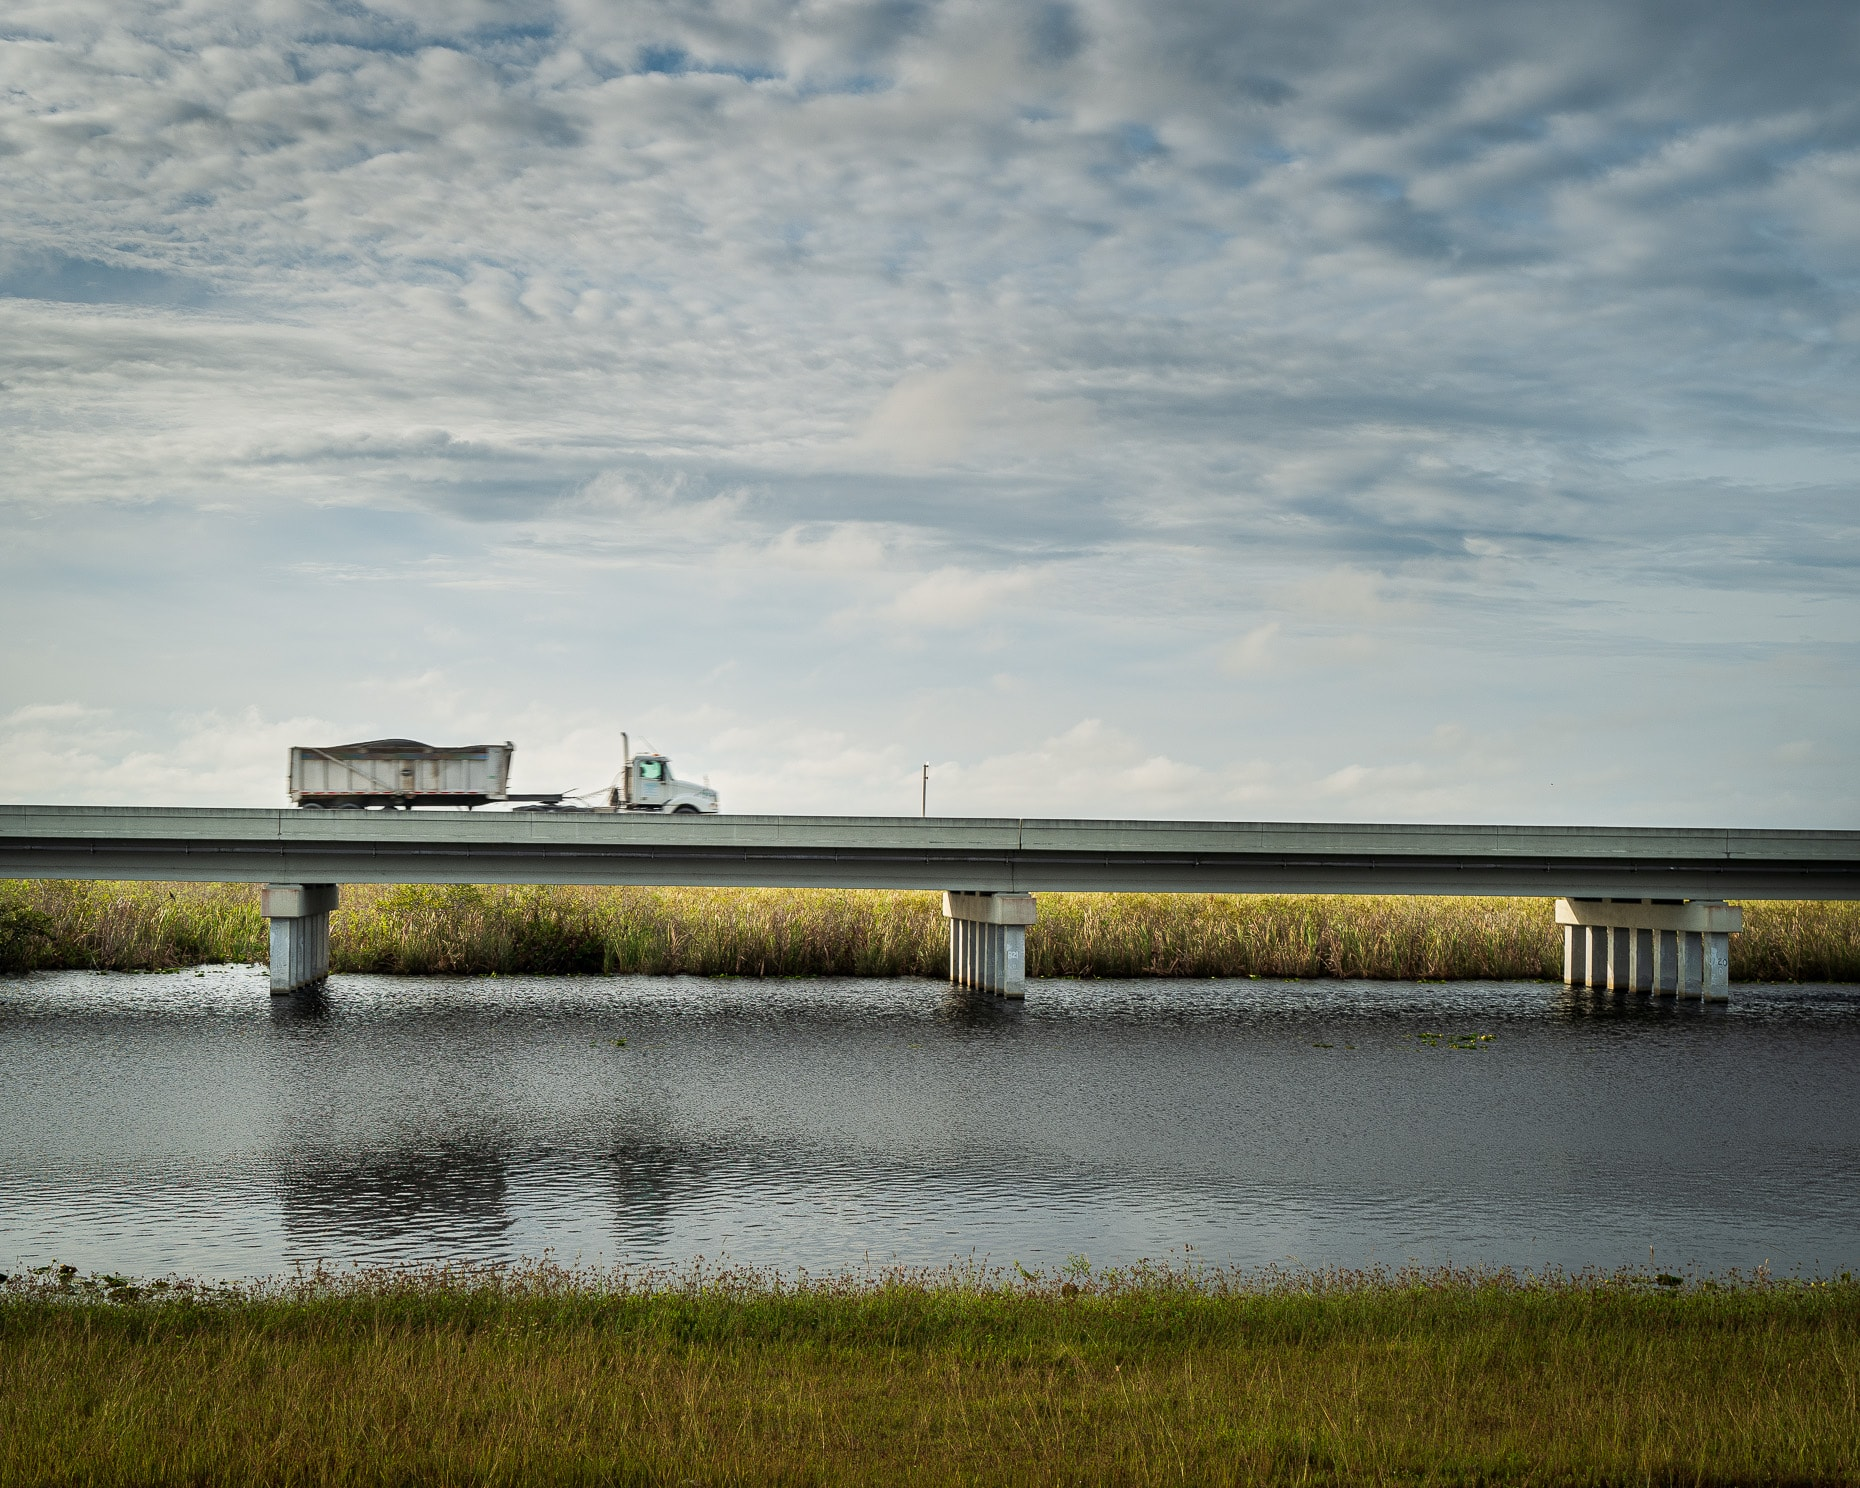 Bridge to let Everglades water flow